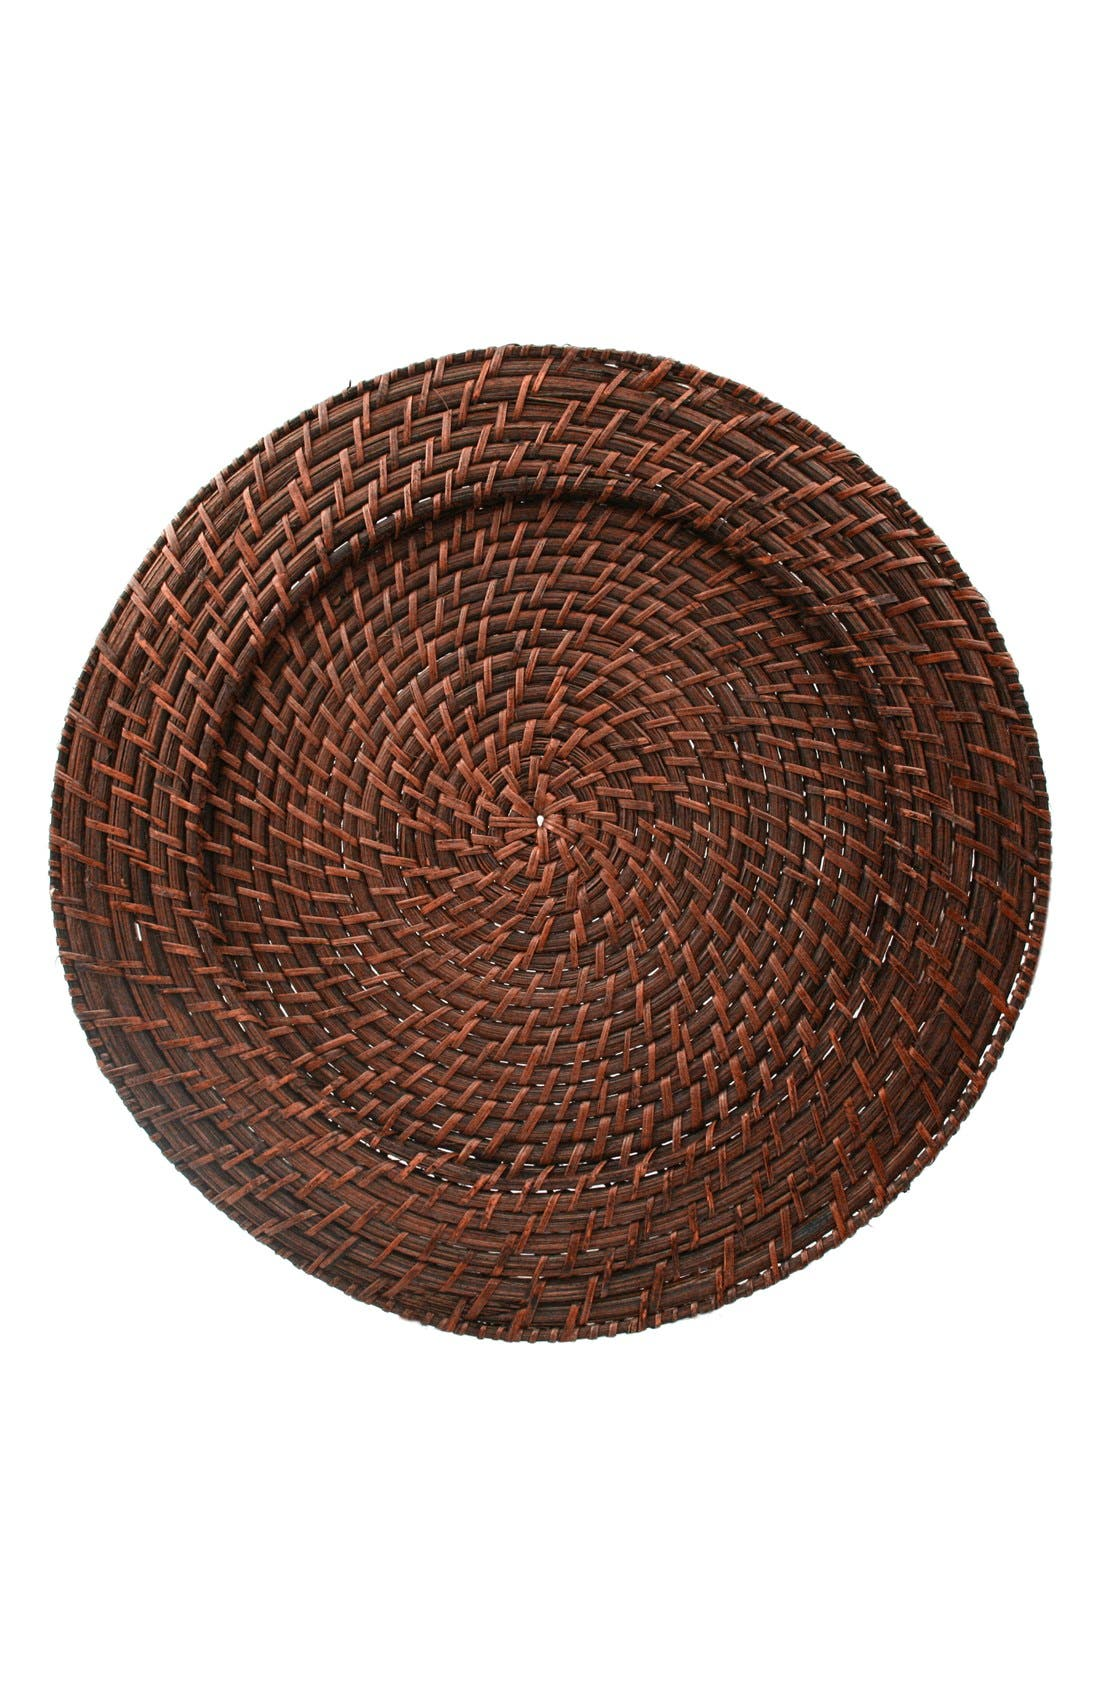 American Atelier Round Rattan Charger